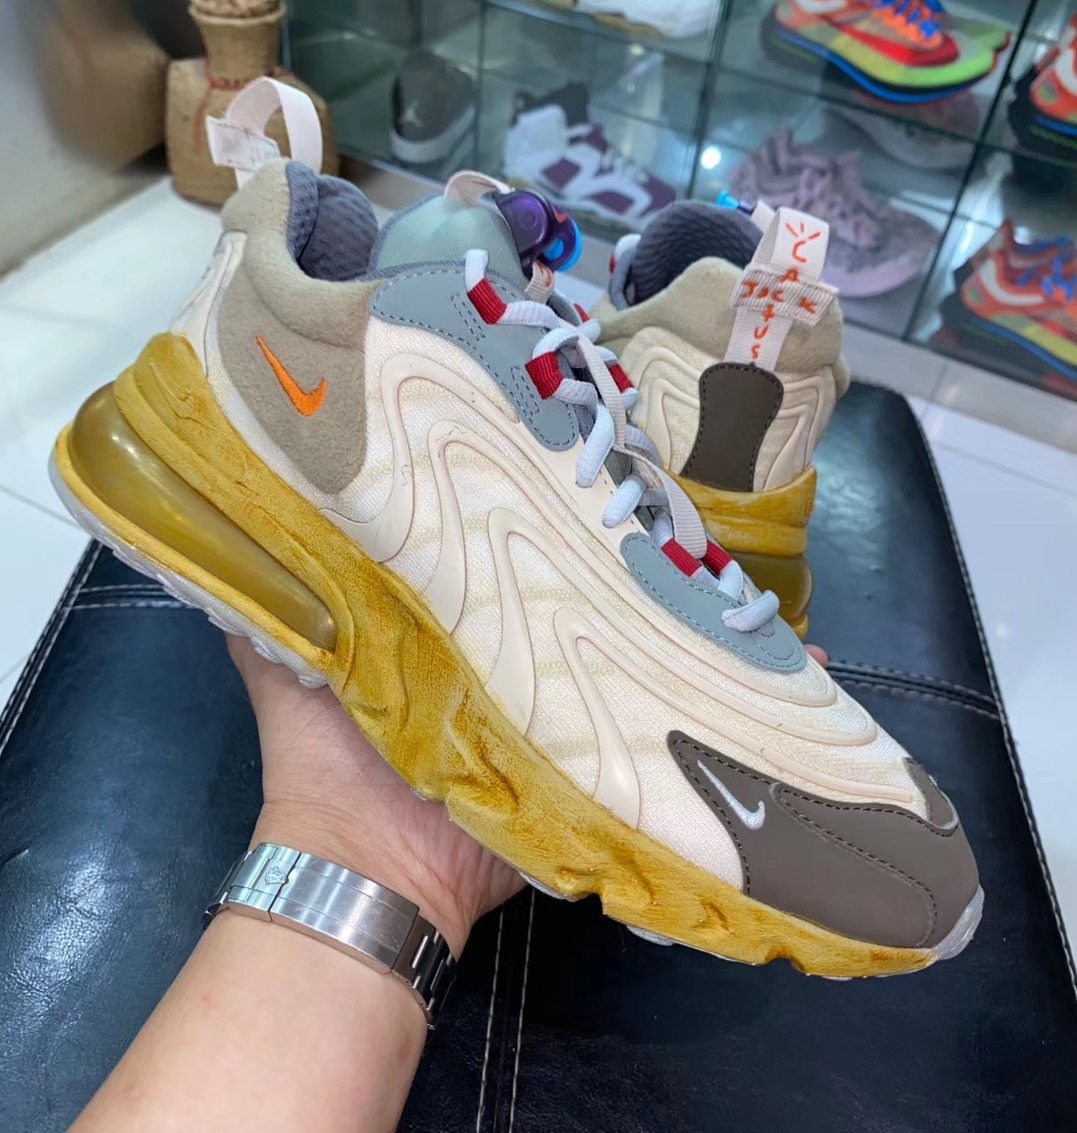 The Travis Scott x Nike Air Max 270 React Has Been Leaked